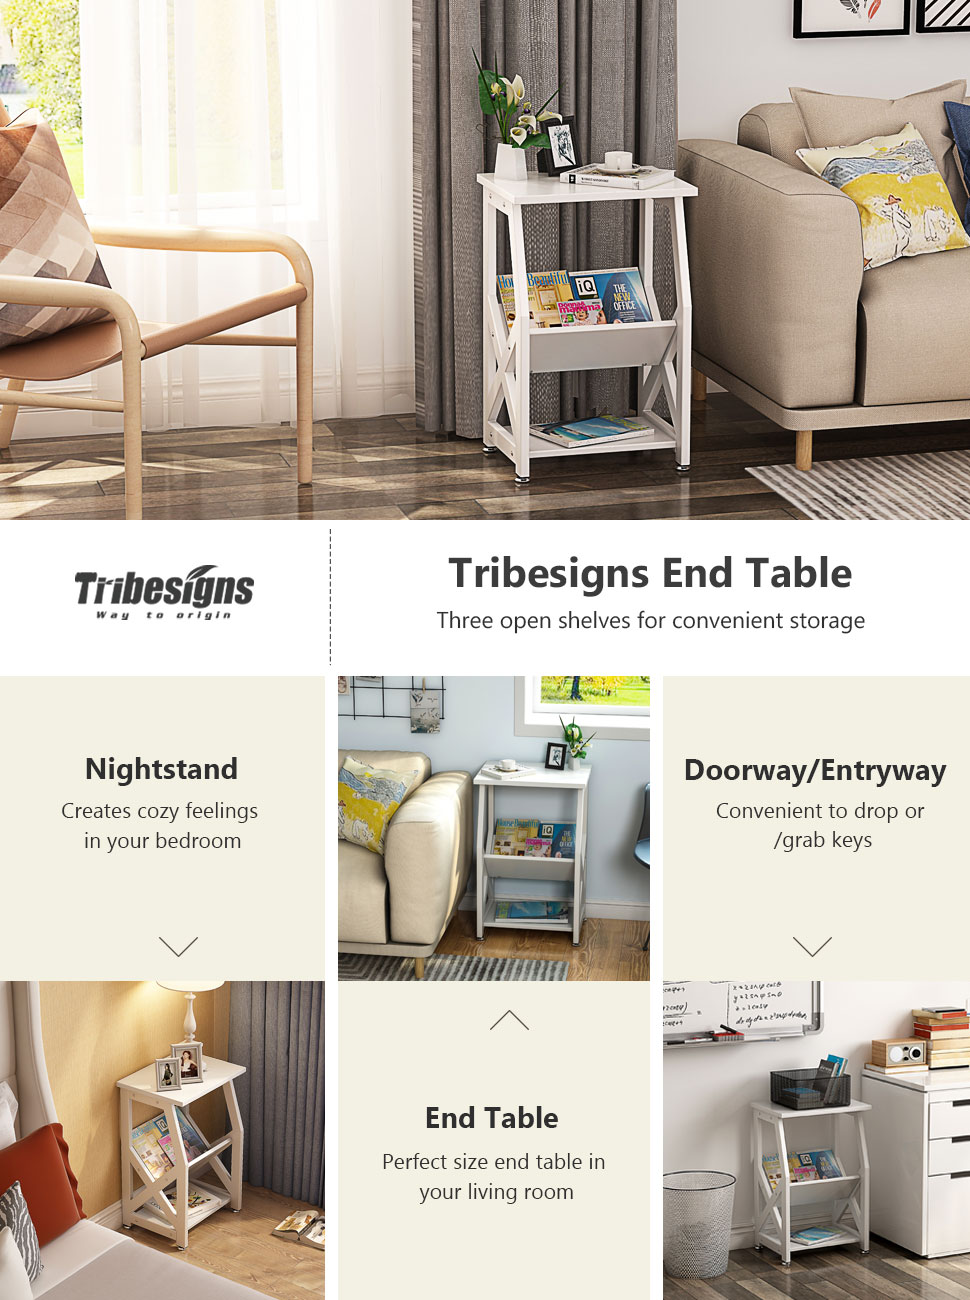 Amazon.com: Tribesigns Chairside End Table Nightstand with Open ...